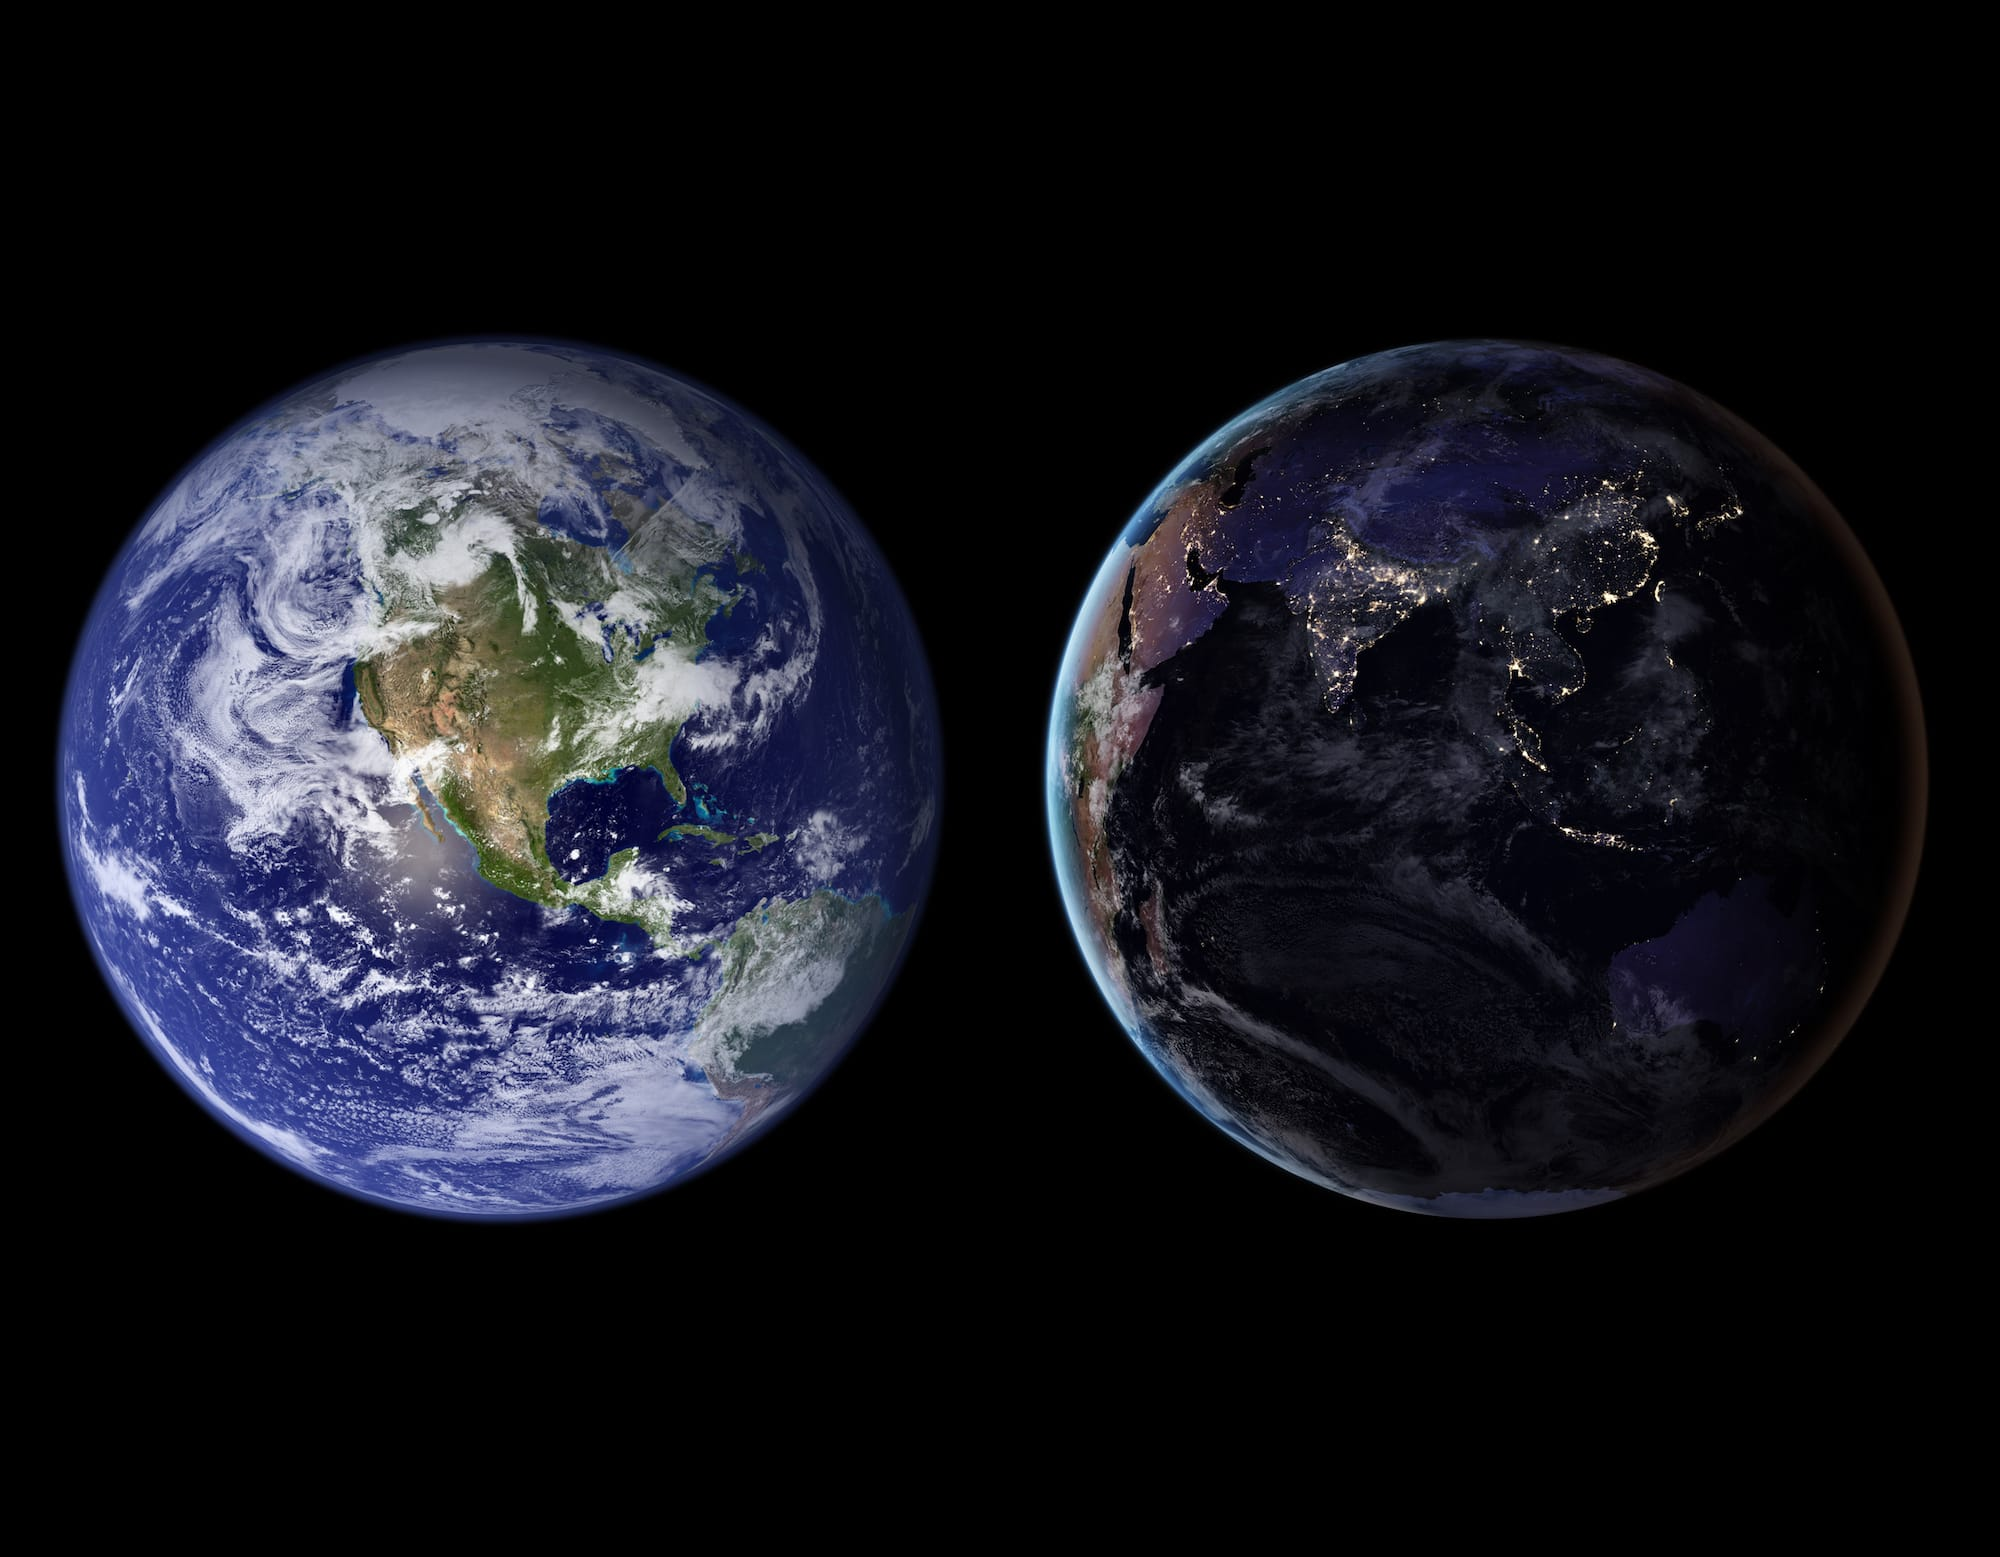 Blue Marble, 2002; Black Marble, 2016. © Courtesy Godard Space Flight Center